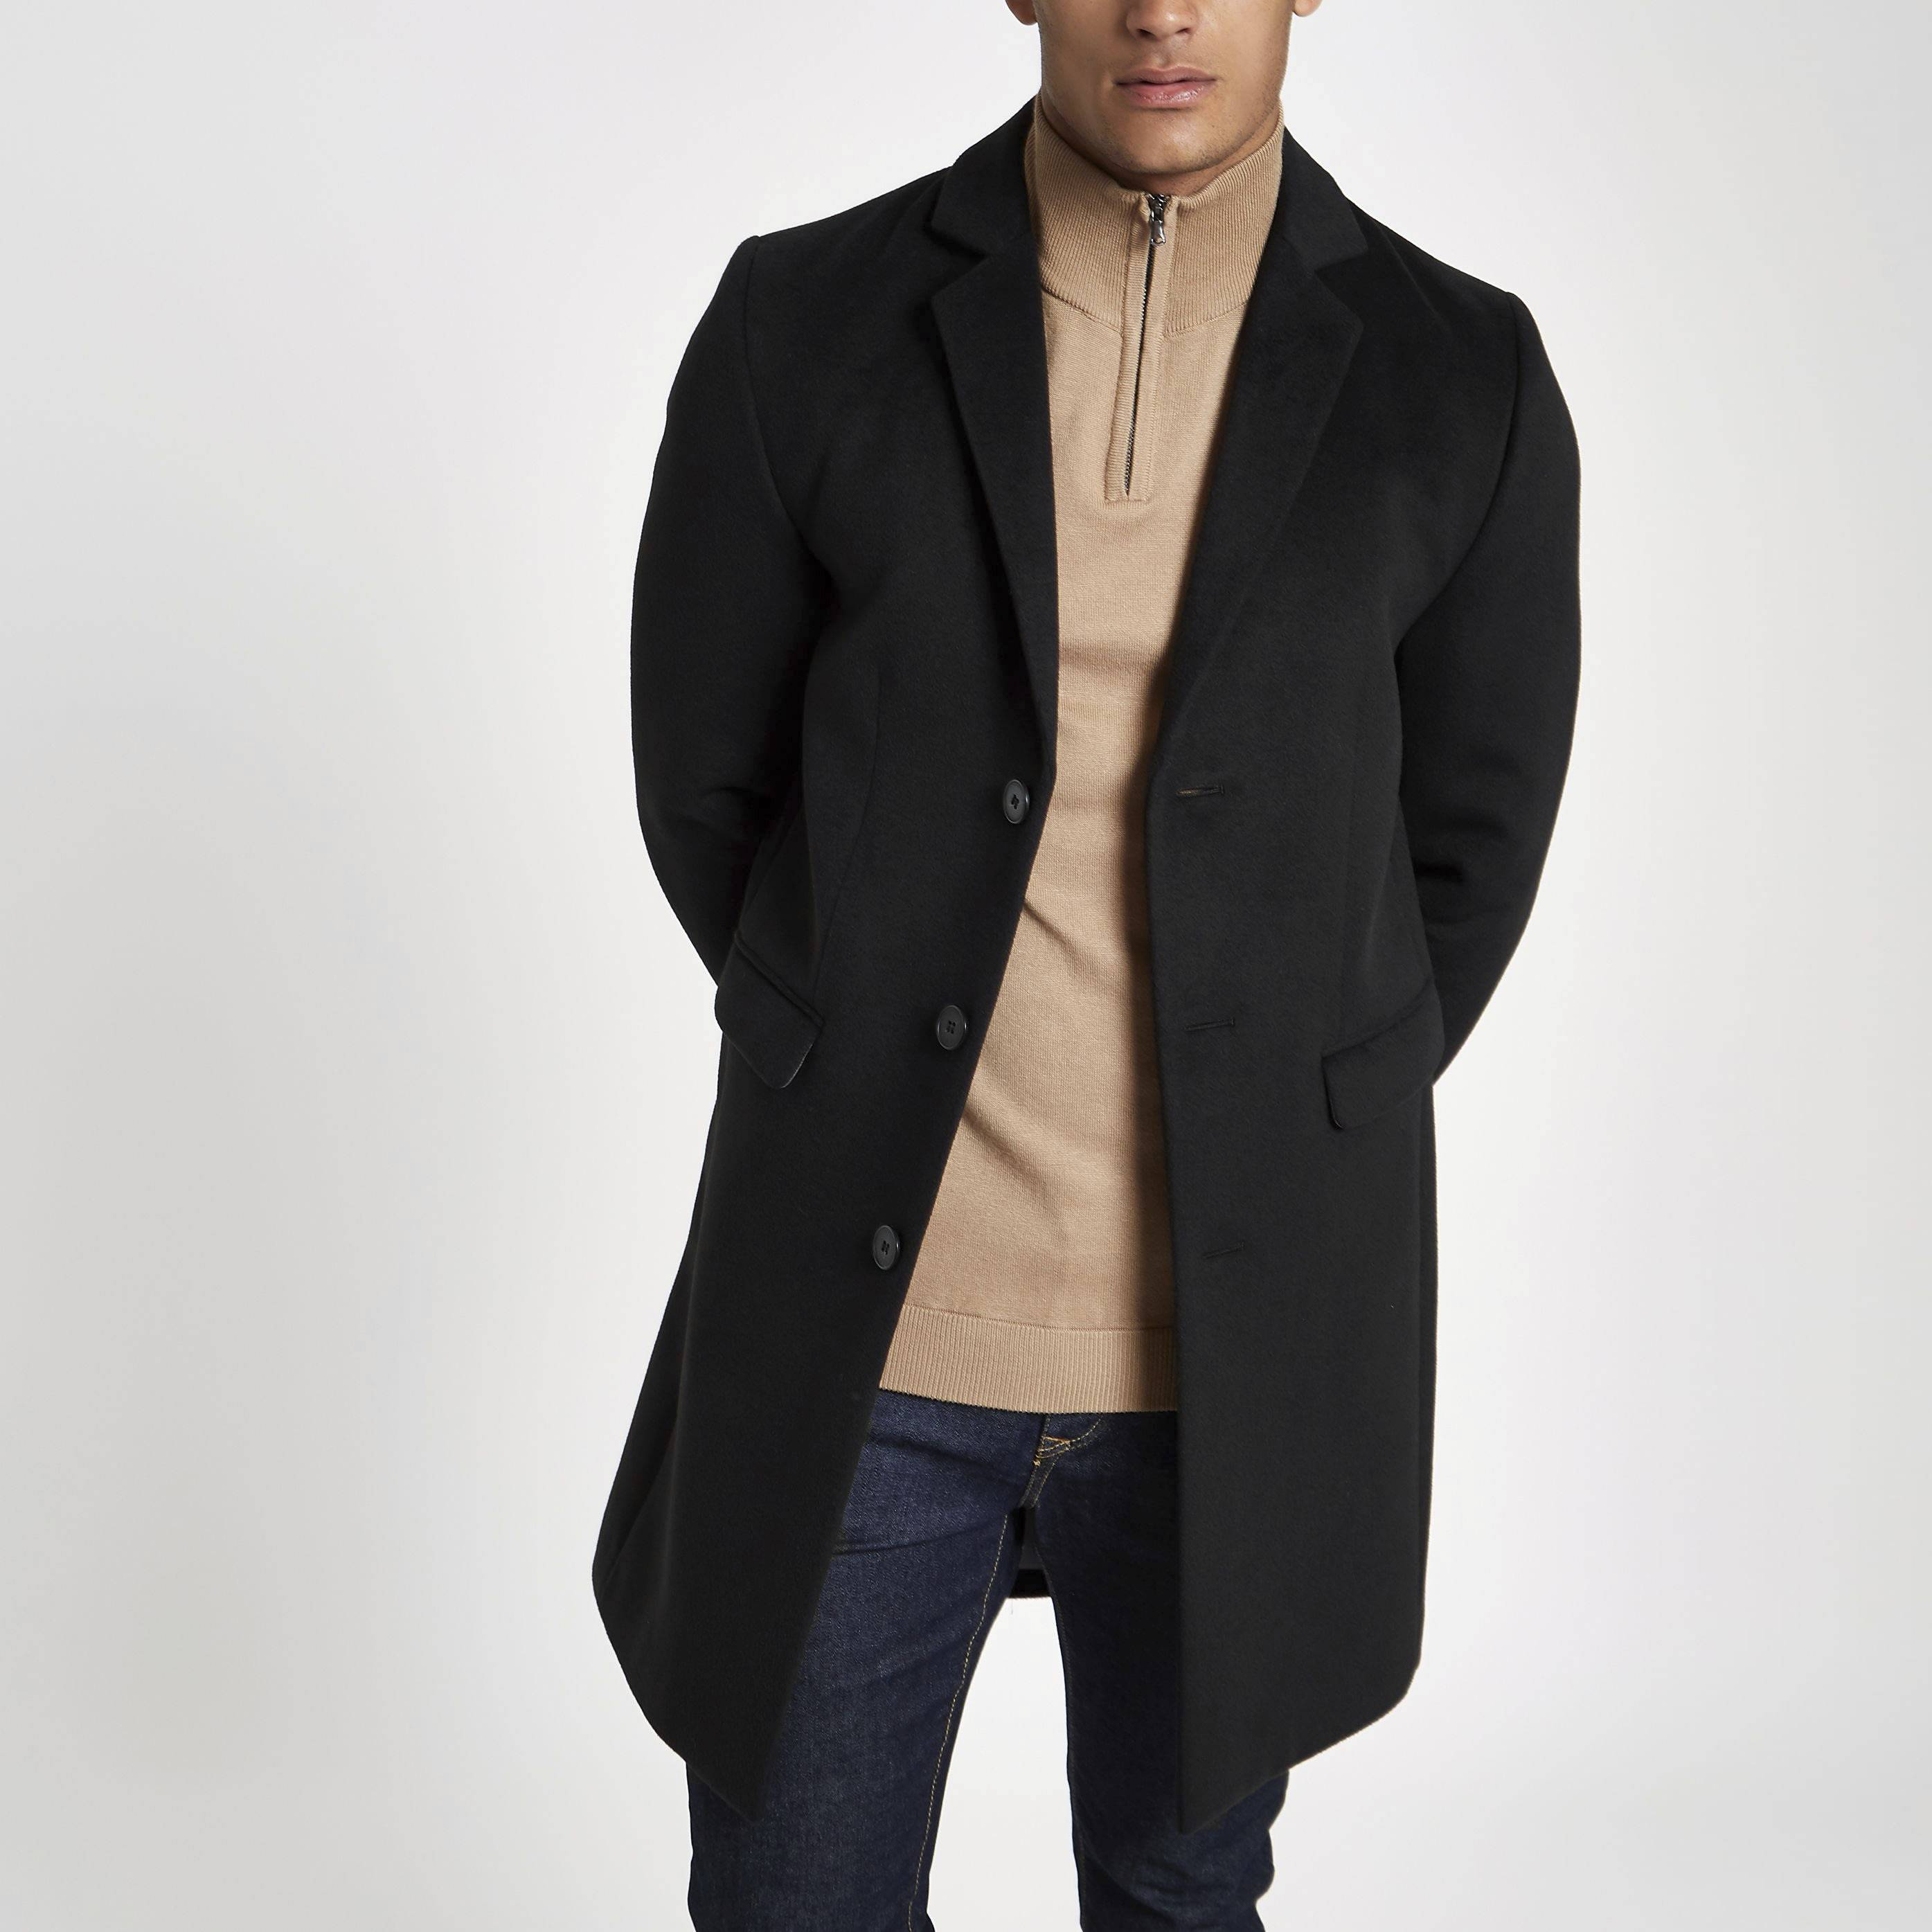 River Island Mens Black single breasted overcoat (XXS)